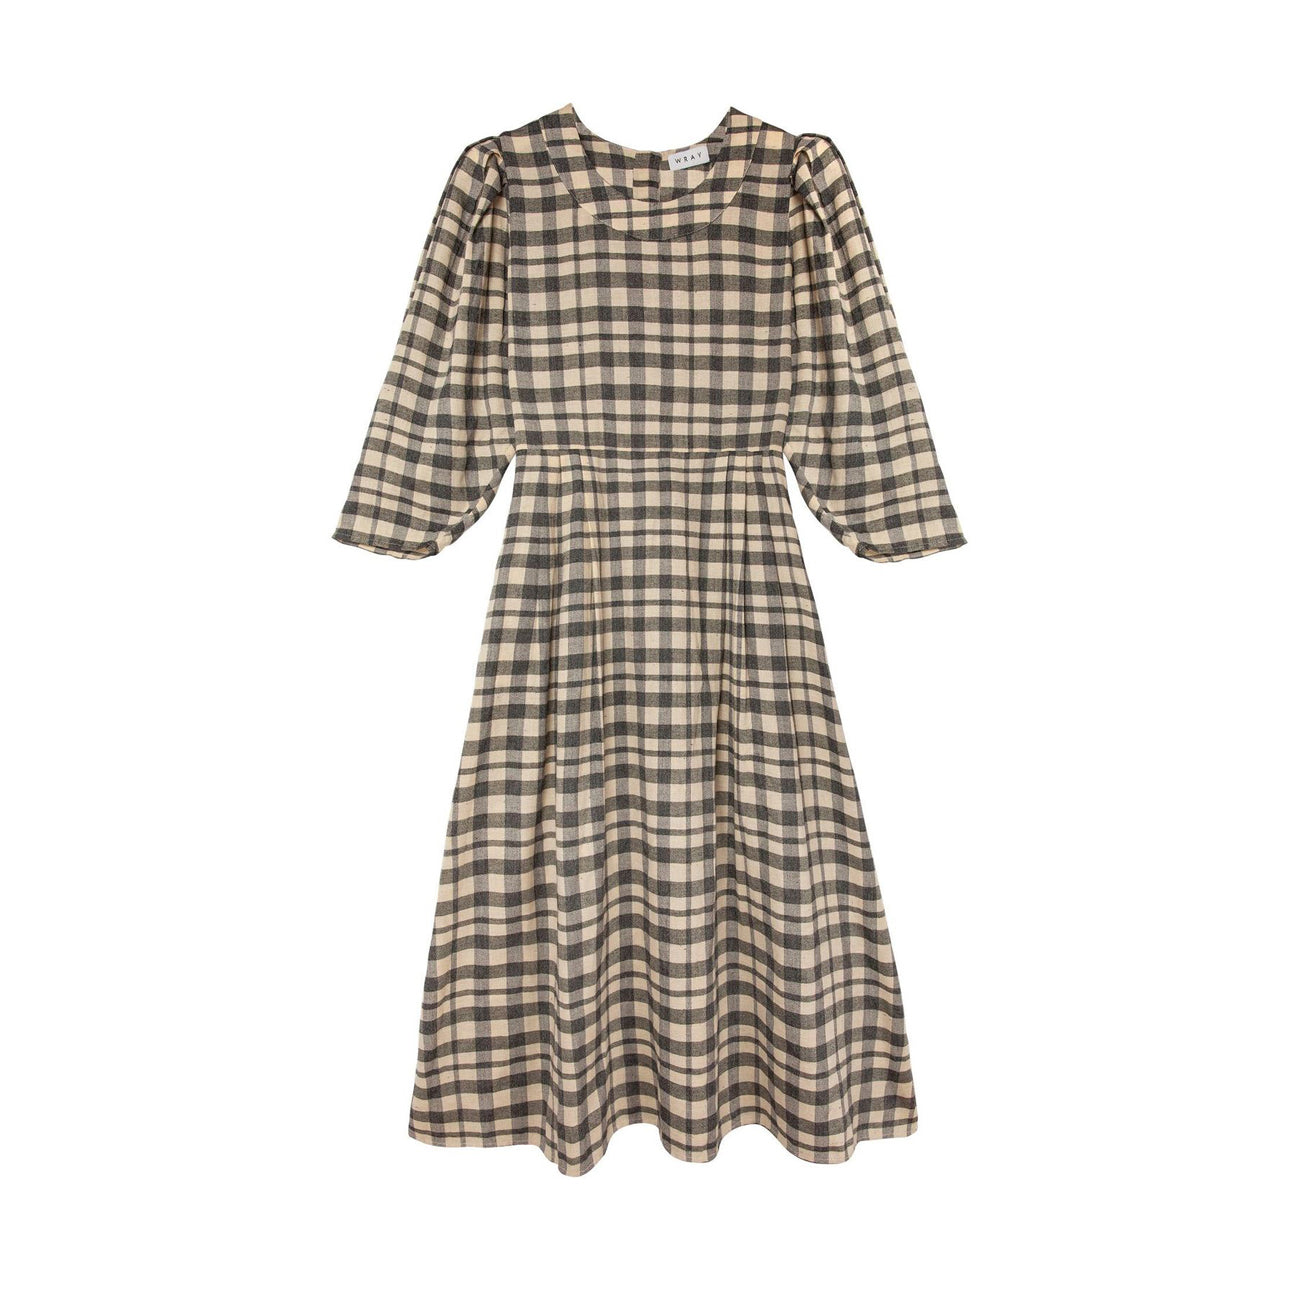 bardot dress in grey check